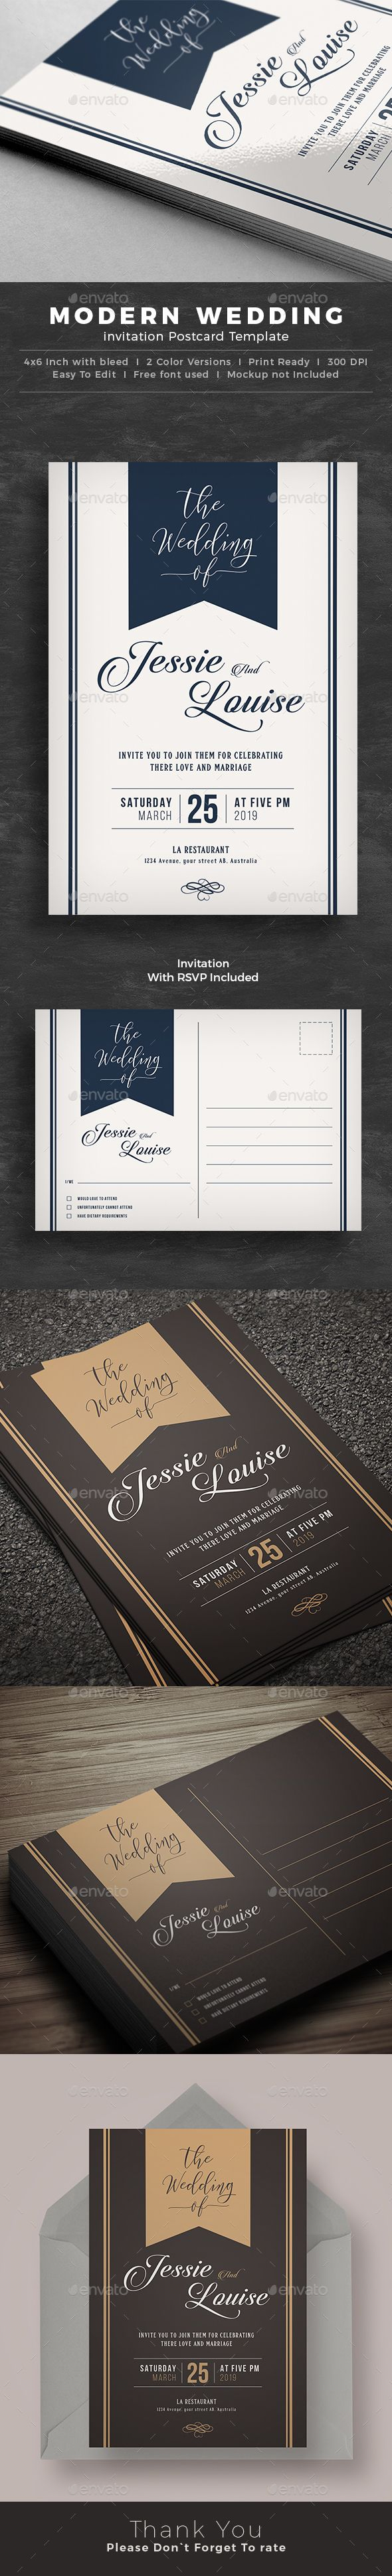 we would like to invite you celebrate our wedding in december0th%0A This is Wedding Invitation Card Design  is the super clean  The flexible  page designs